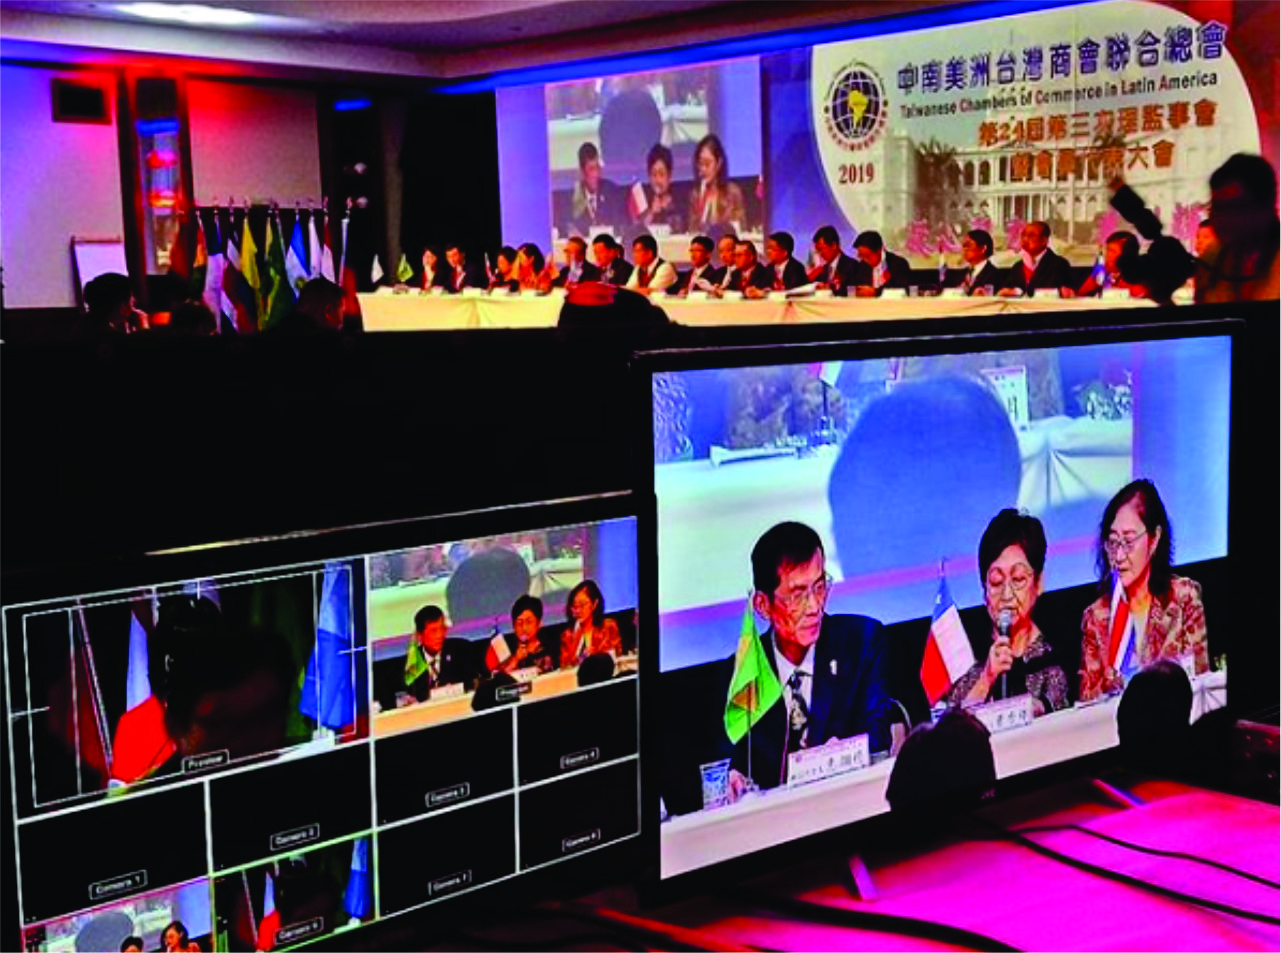 24th Meeting of the Taiwanese Chamber of Commerce in Latin America 1